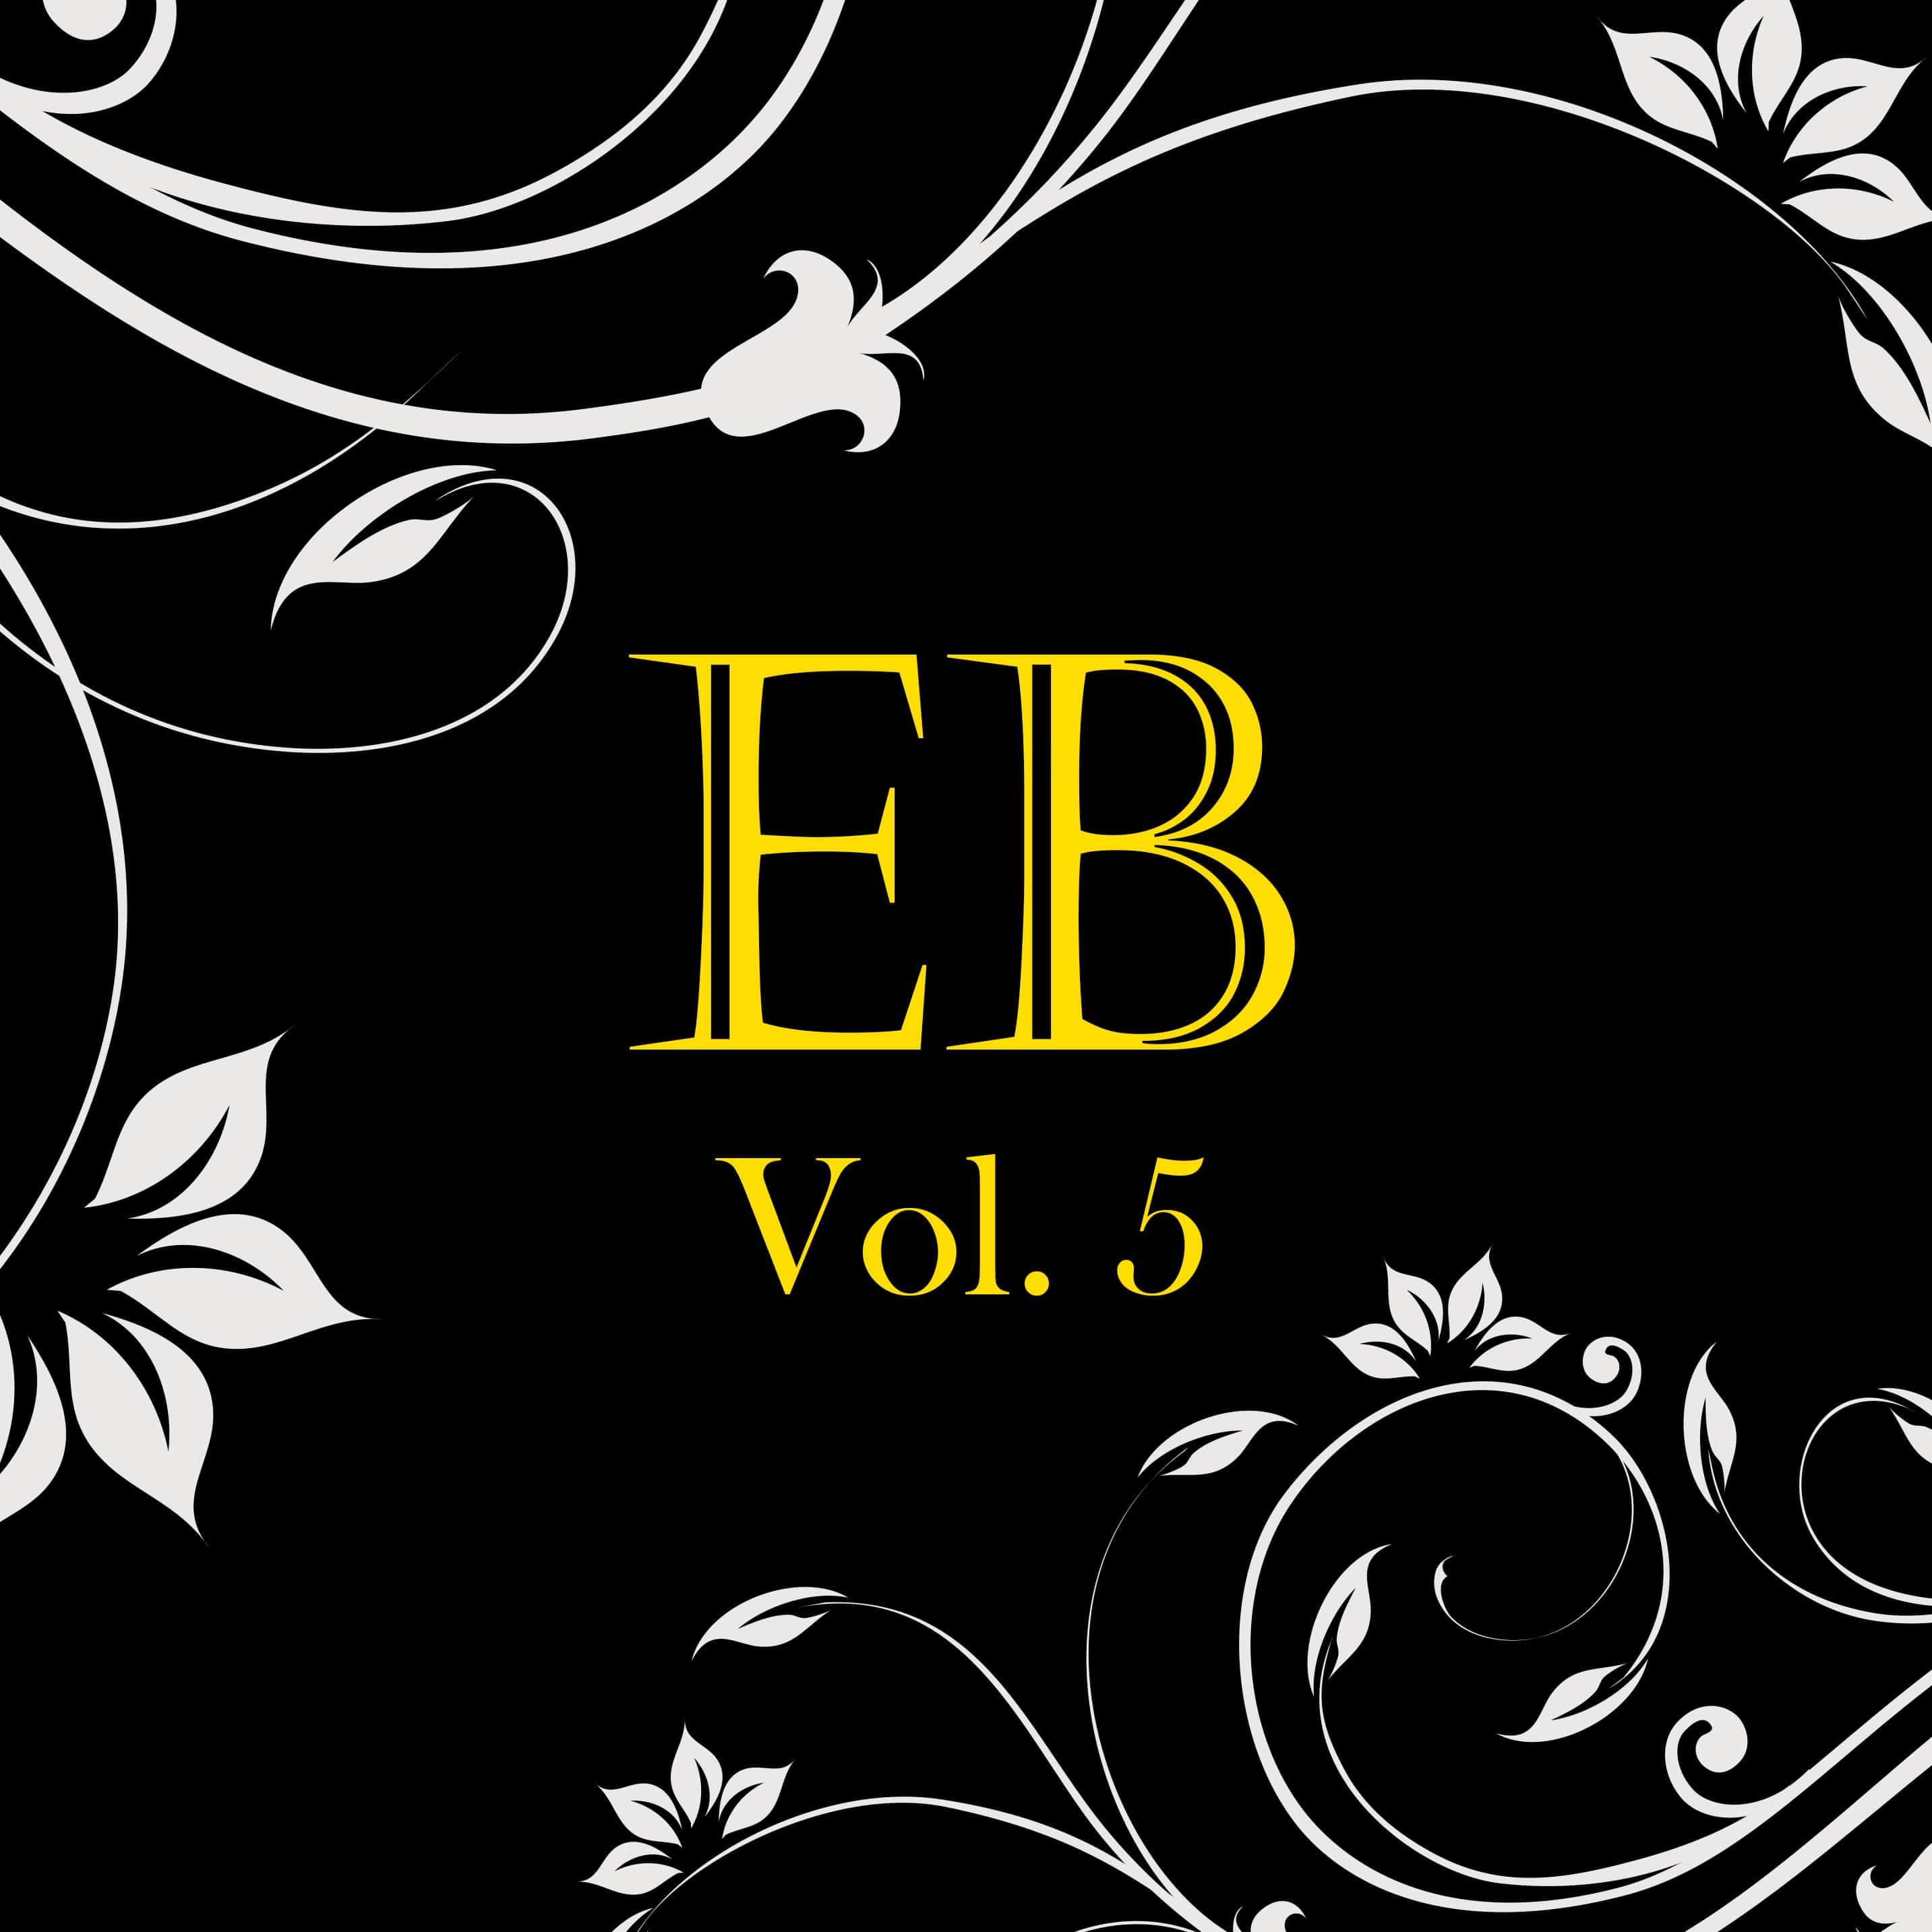 EB Collection VOL. 5